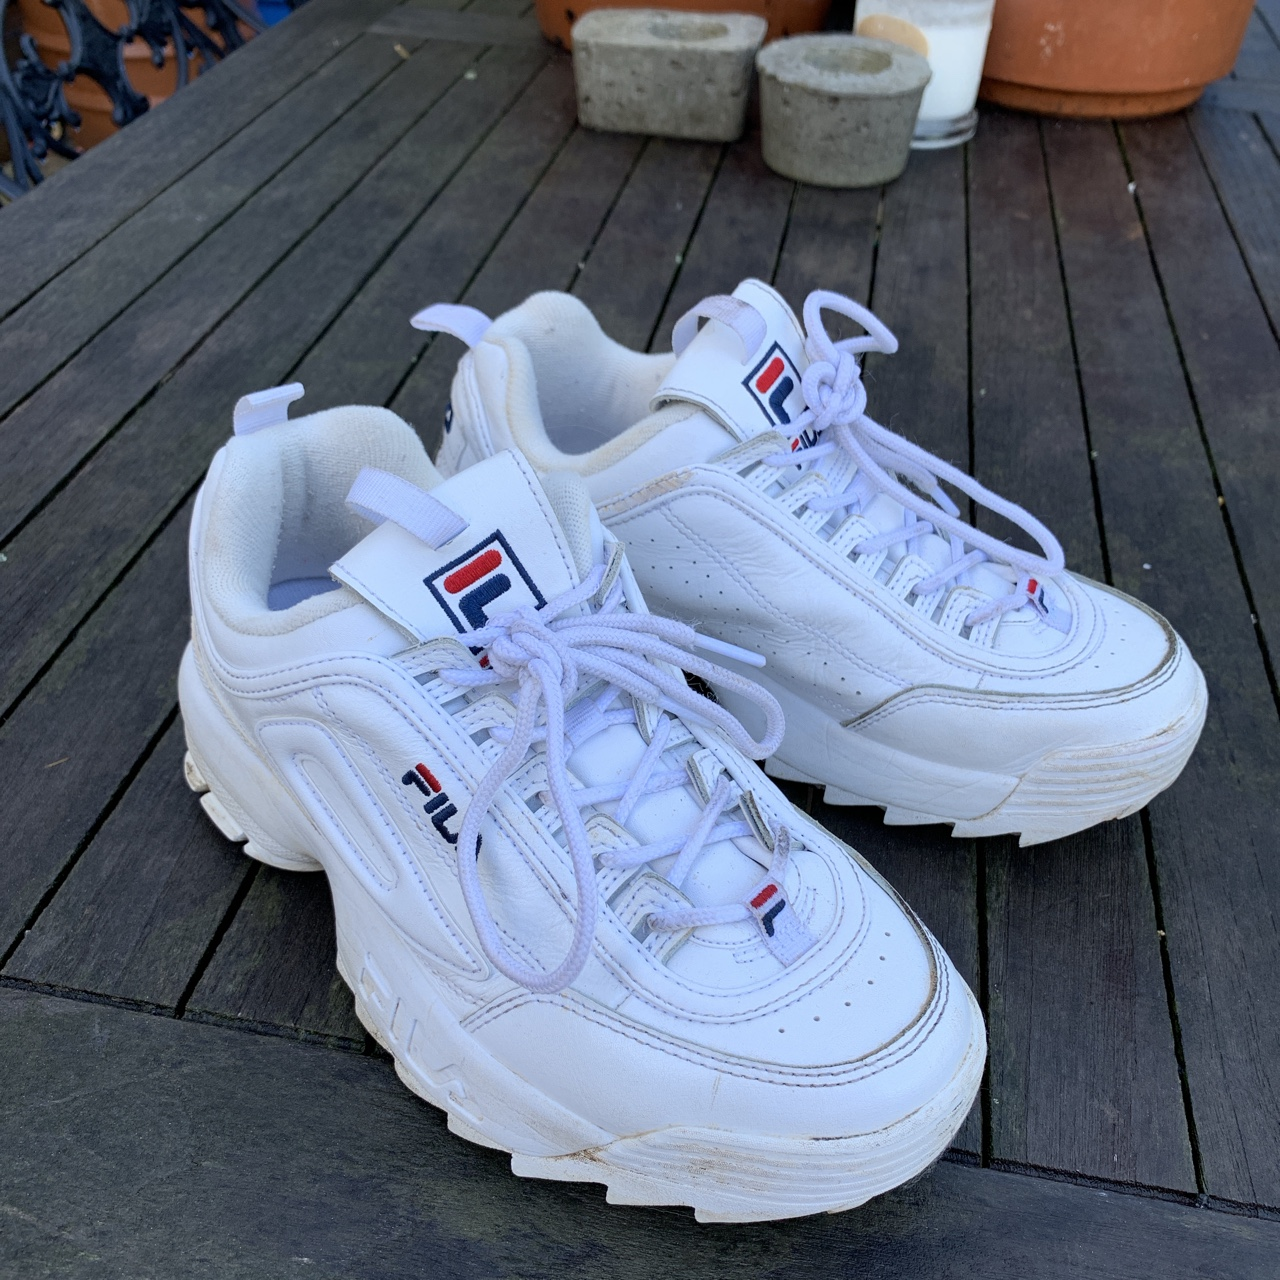 FILA DISRUPTORS super cute chunky stompers to go